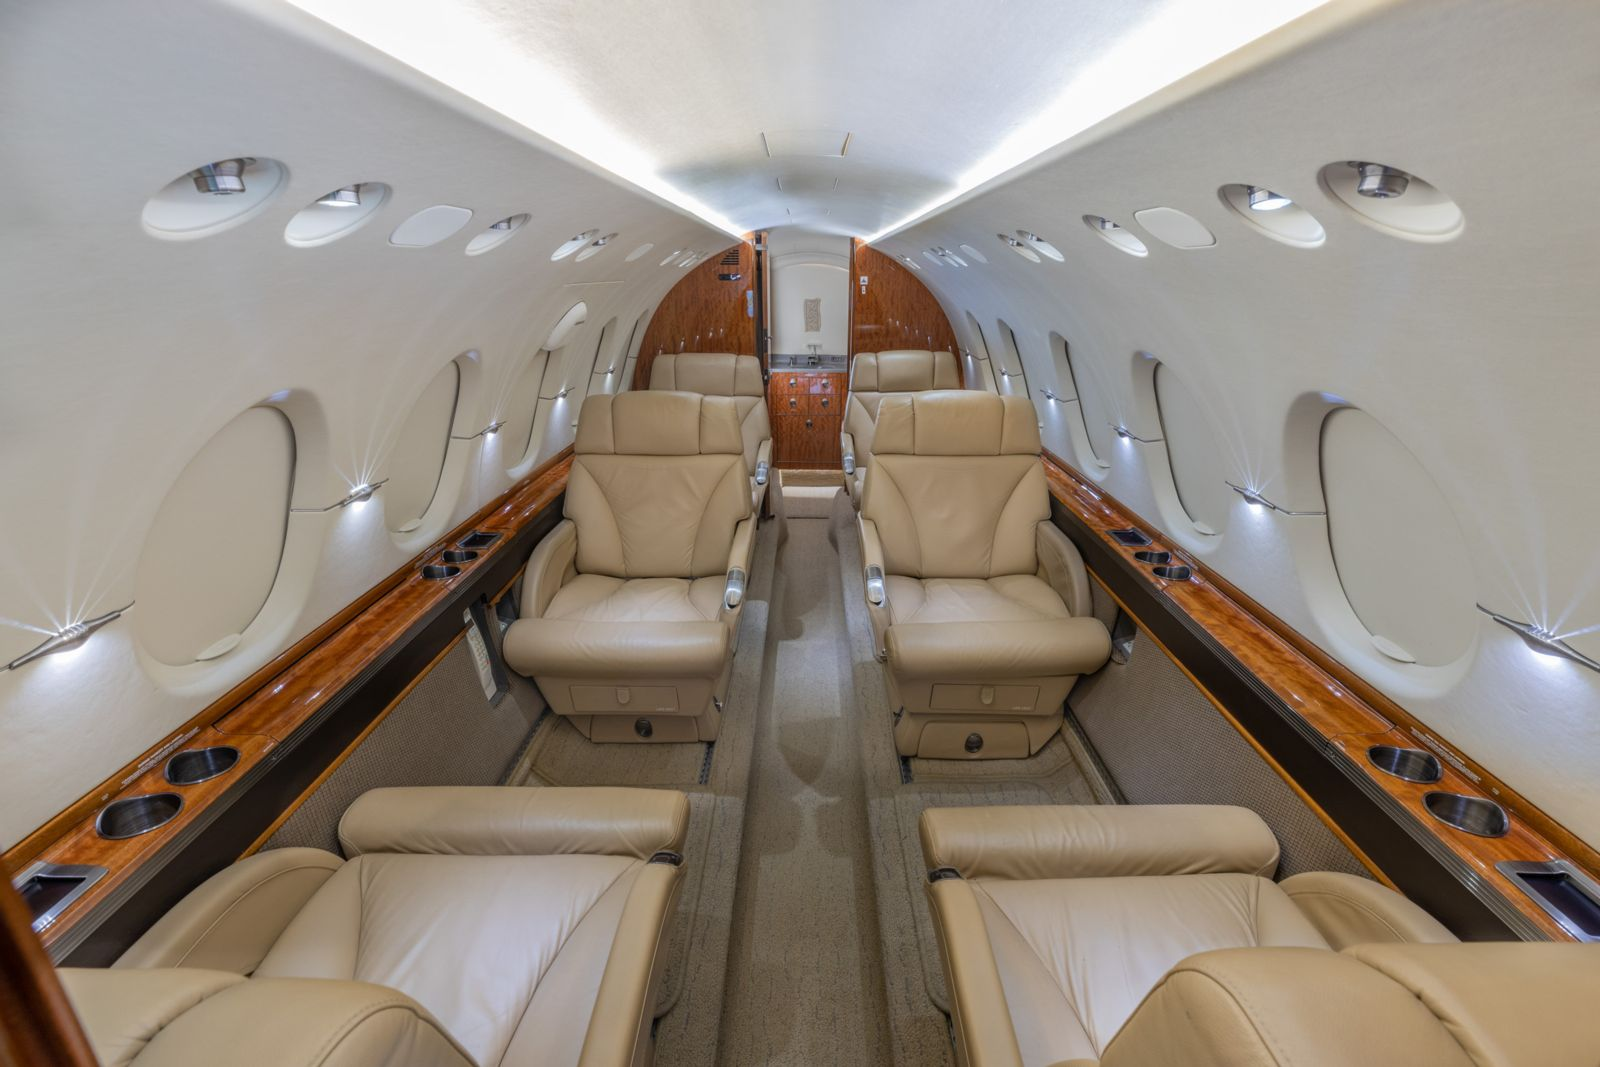 Hawker/Textron 800XPi  S/N 258729 for sale | gallery image: /userfiles/images/Hawker800XPi_sn729/n707ks-webres-8.jpg